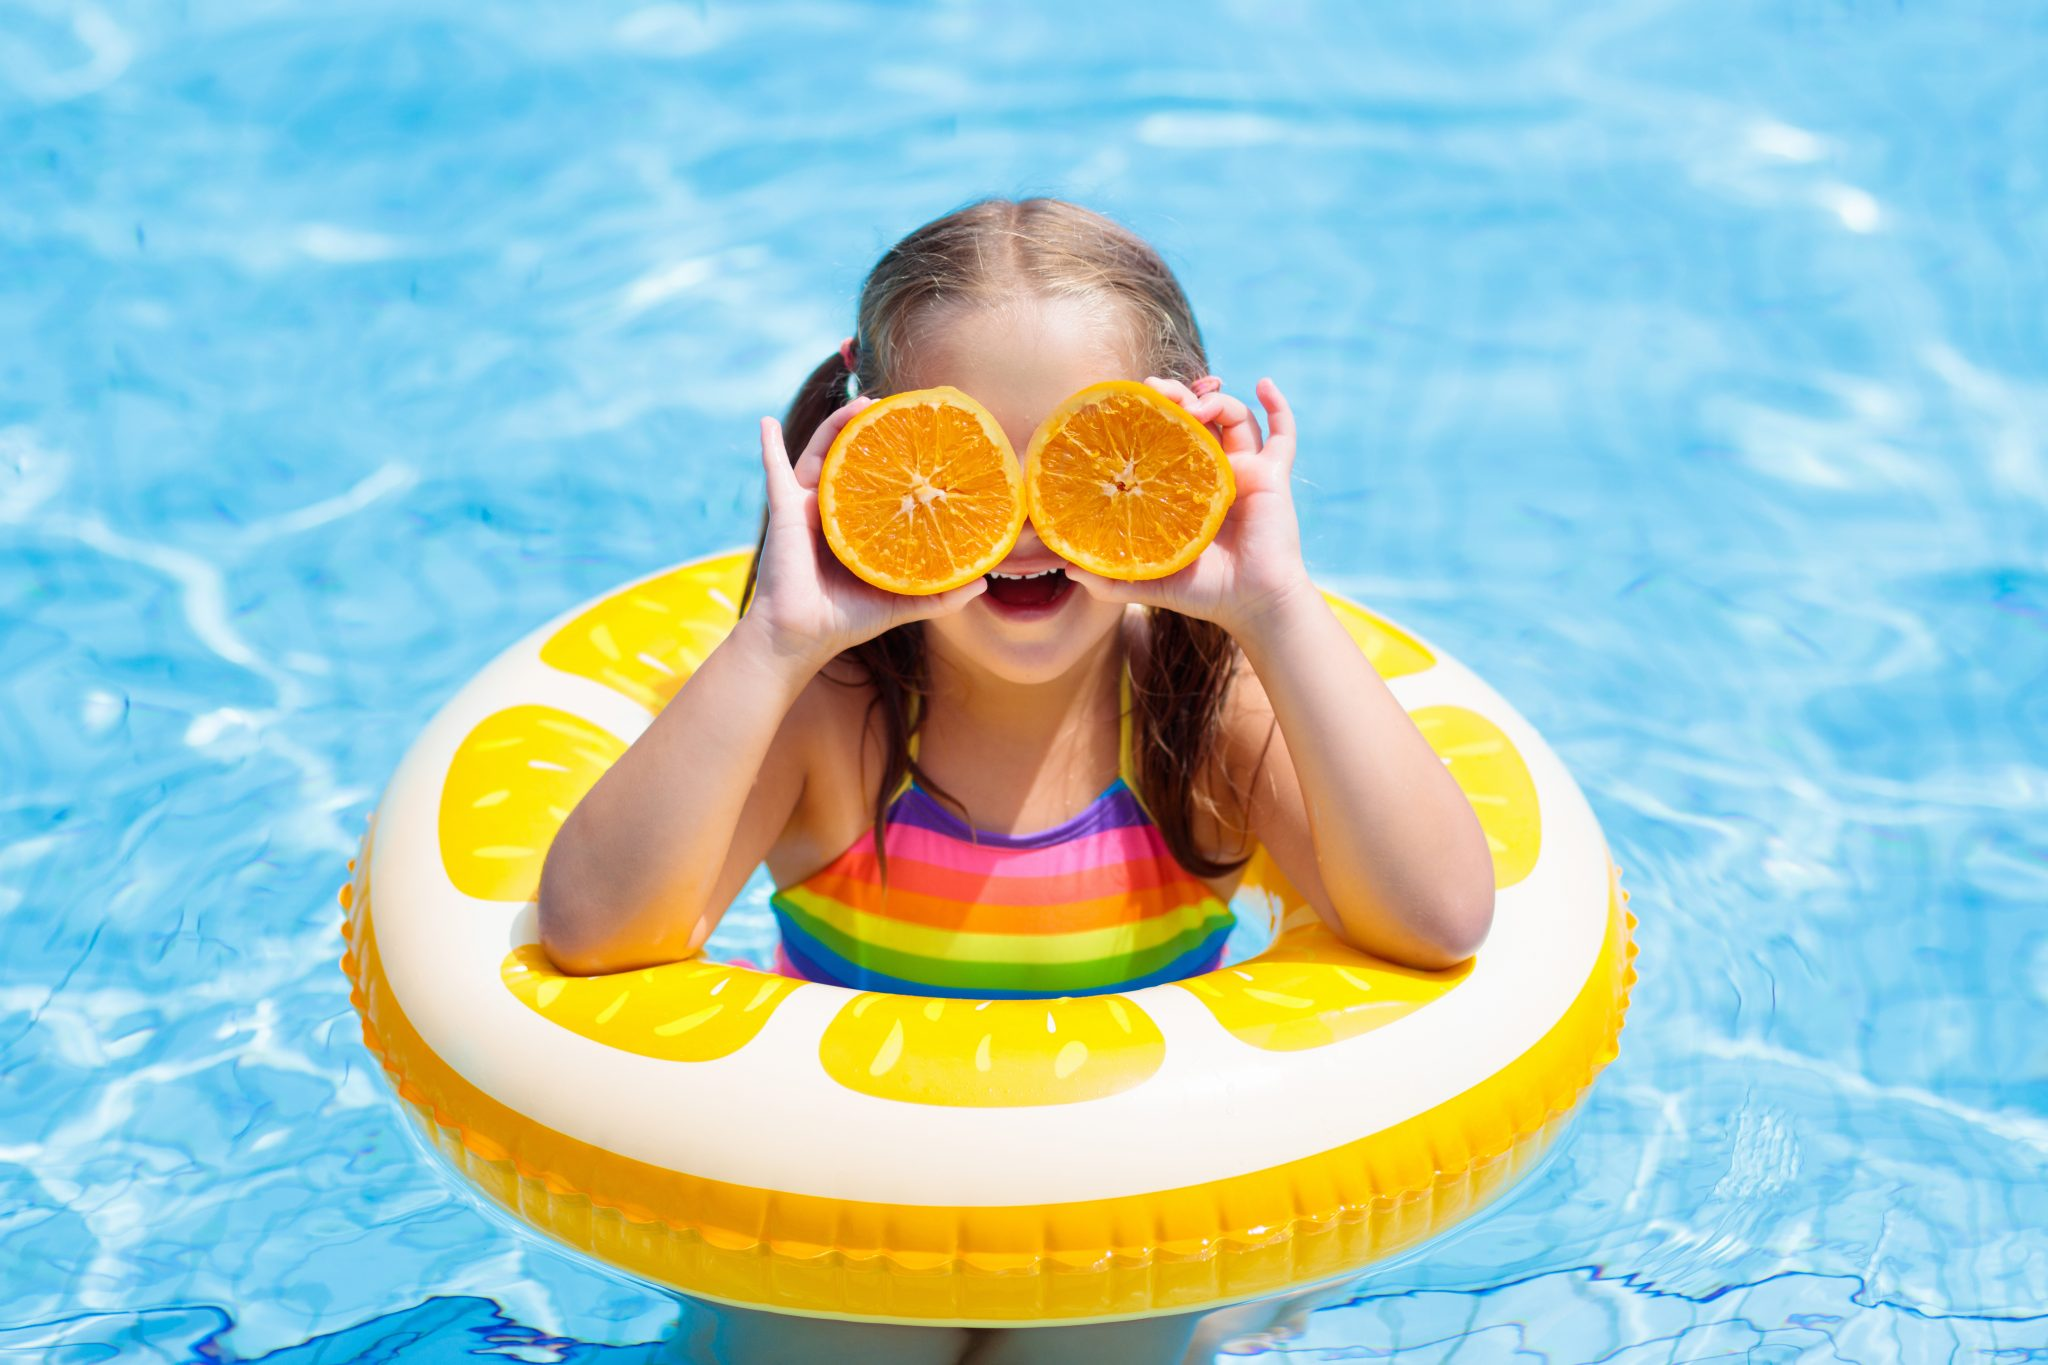 Little girl in swimming pool with inflatable toy ring eating orange.